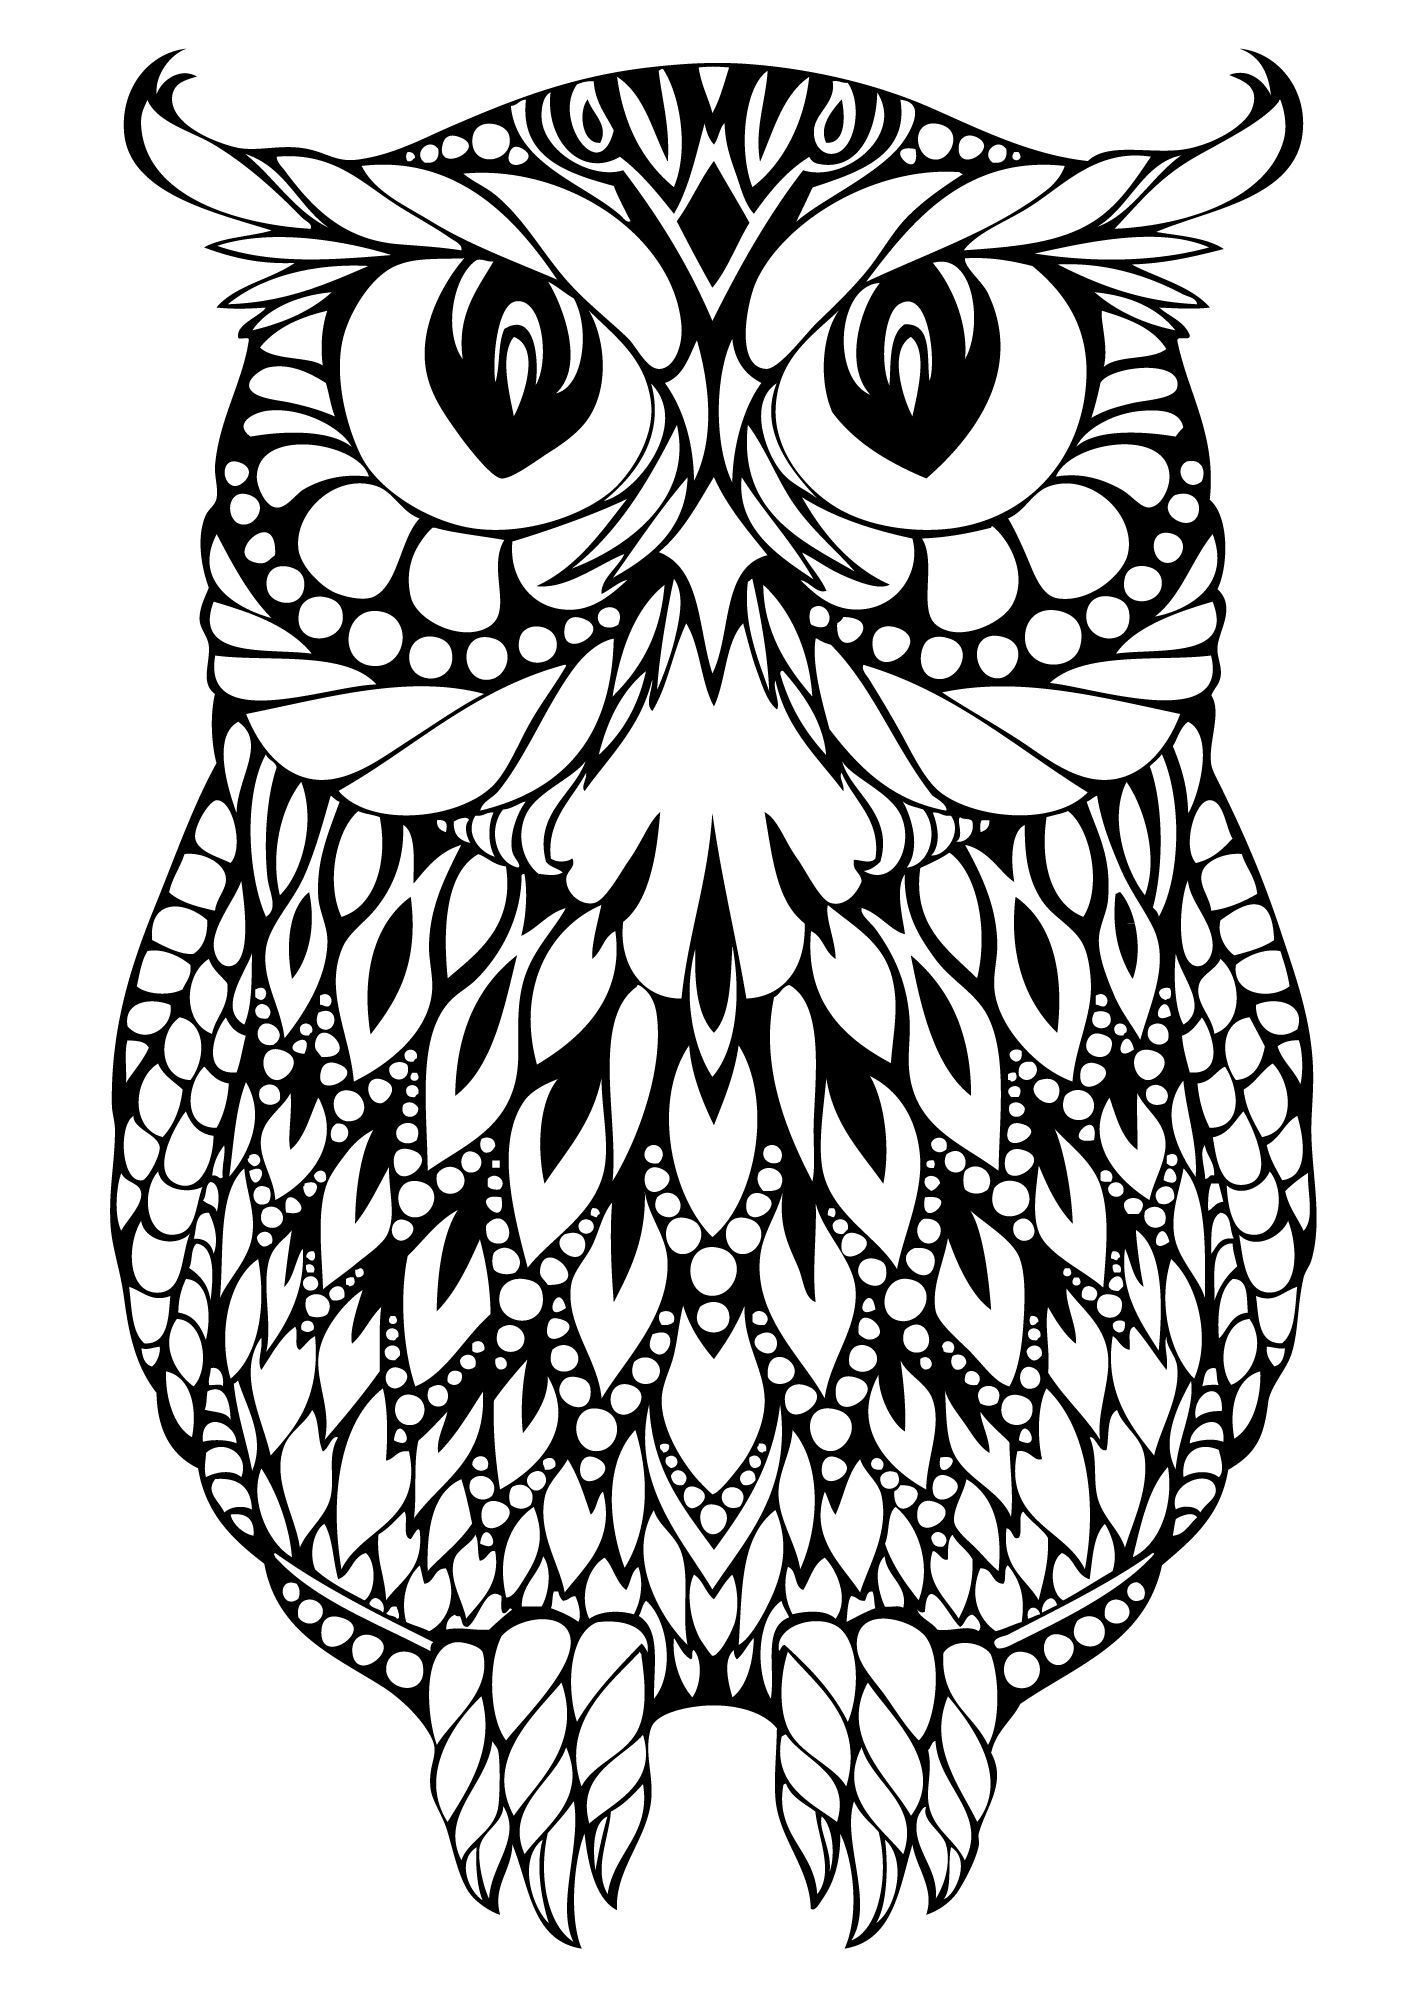 detailed owl coloring pages owl coloring pages for adults free detailed owl coloring coloring owl detailed pages